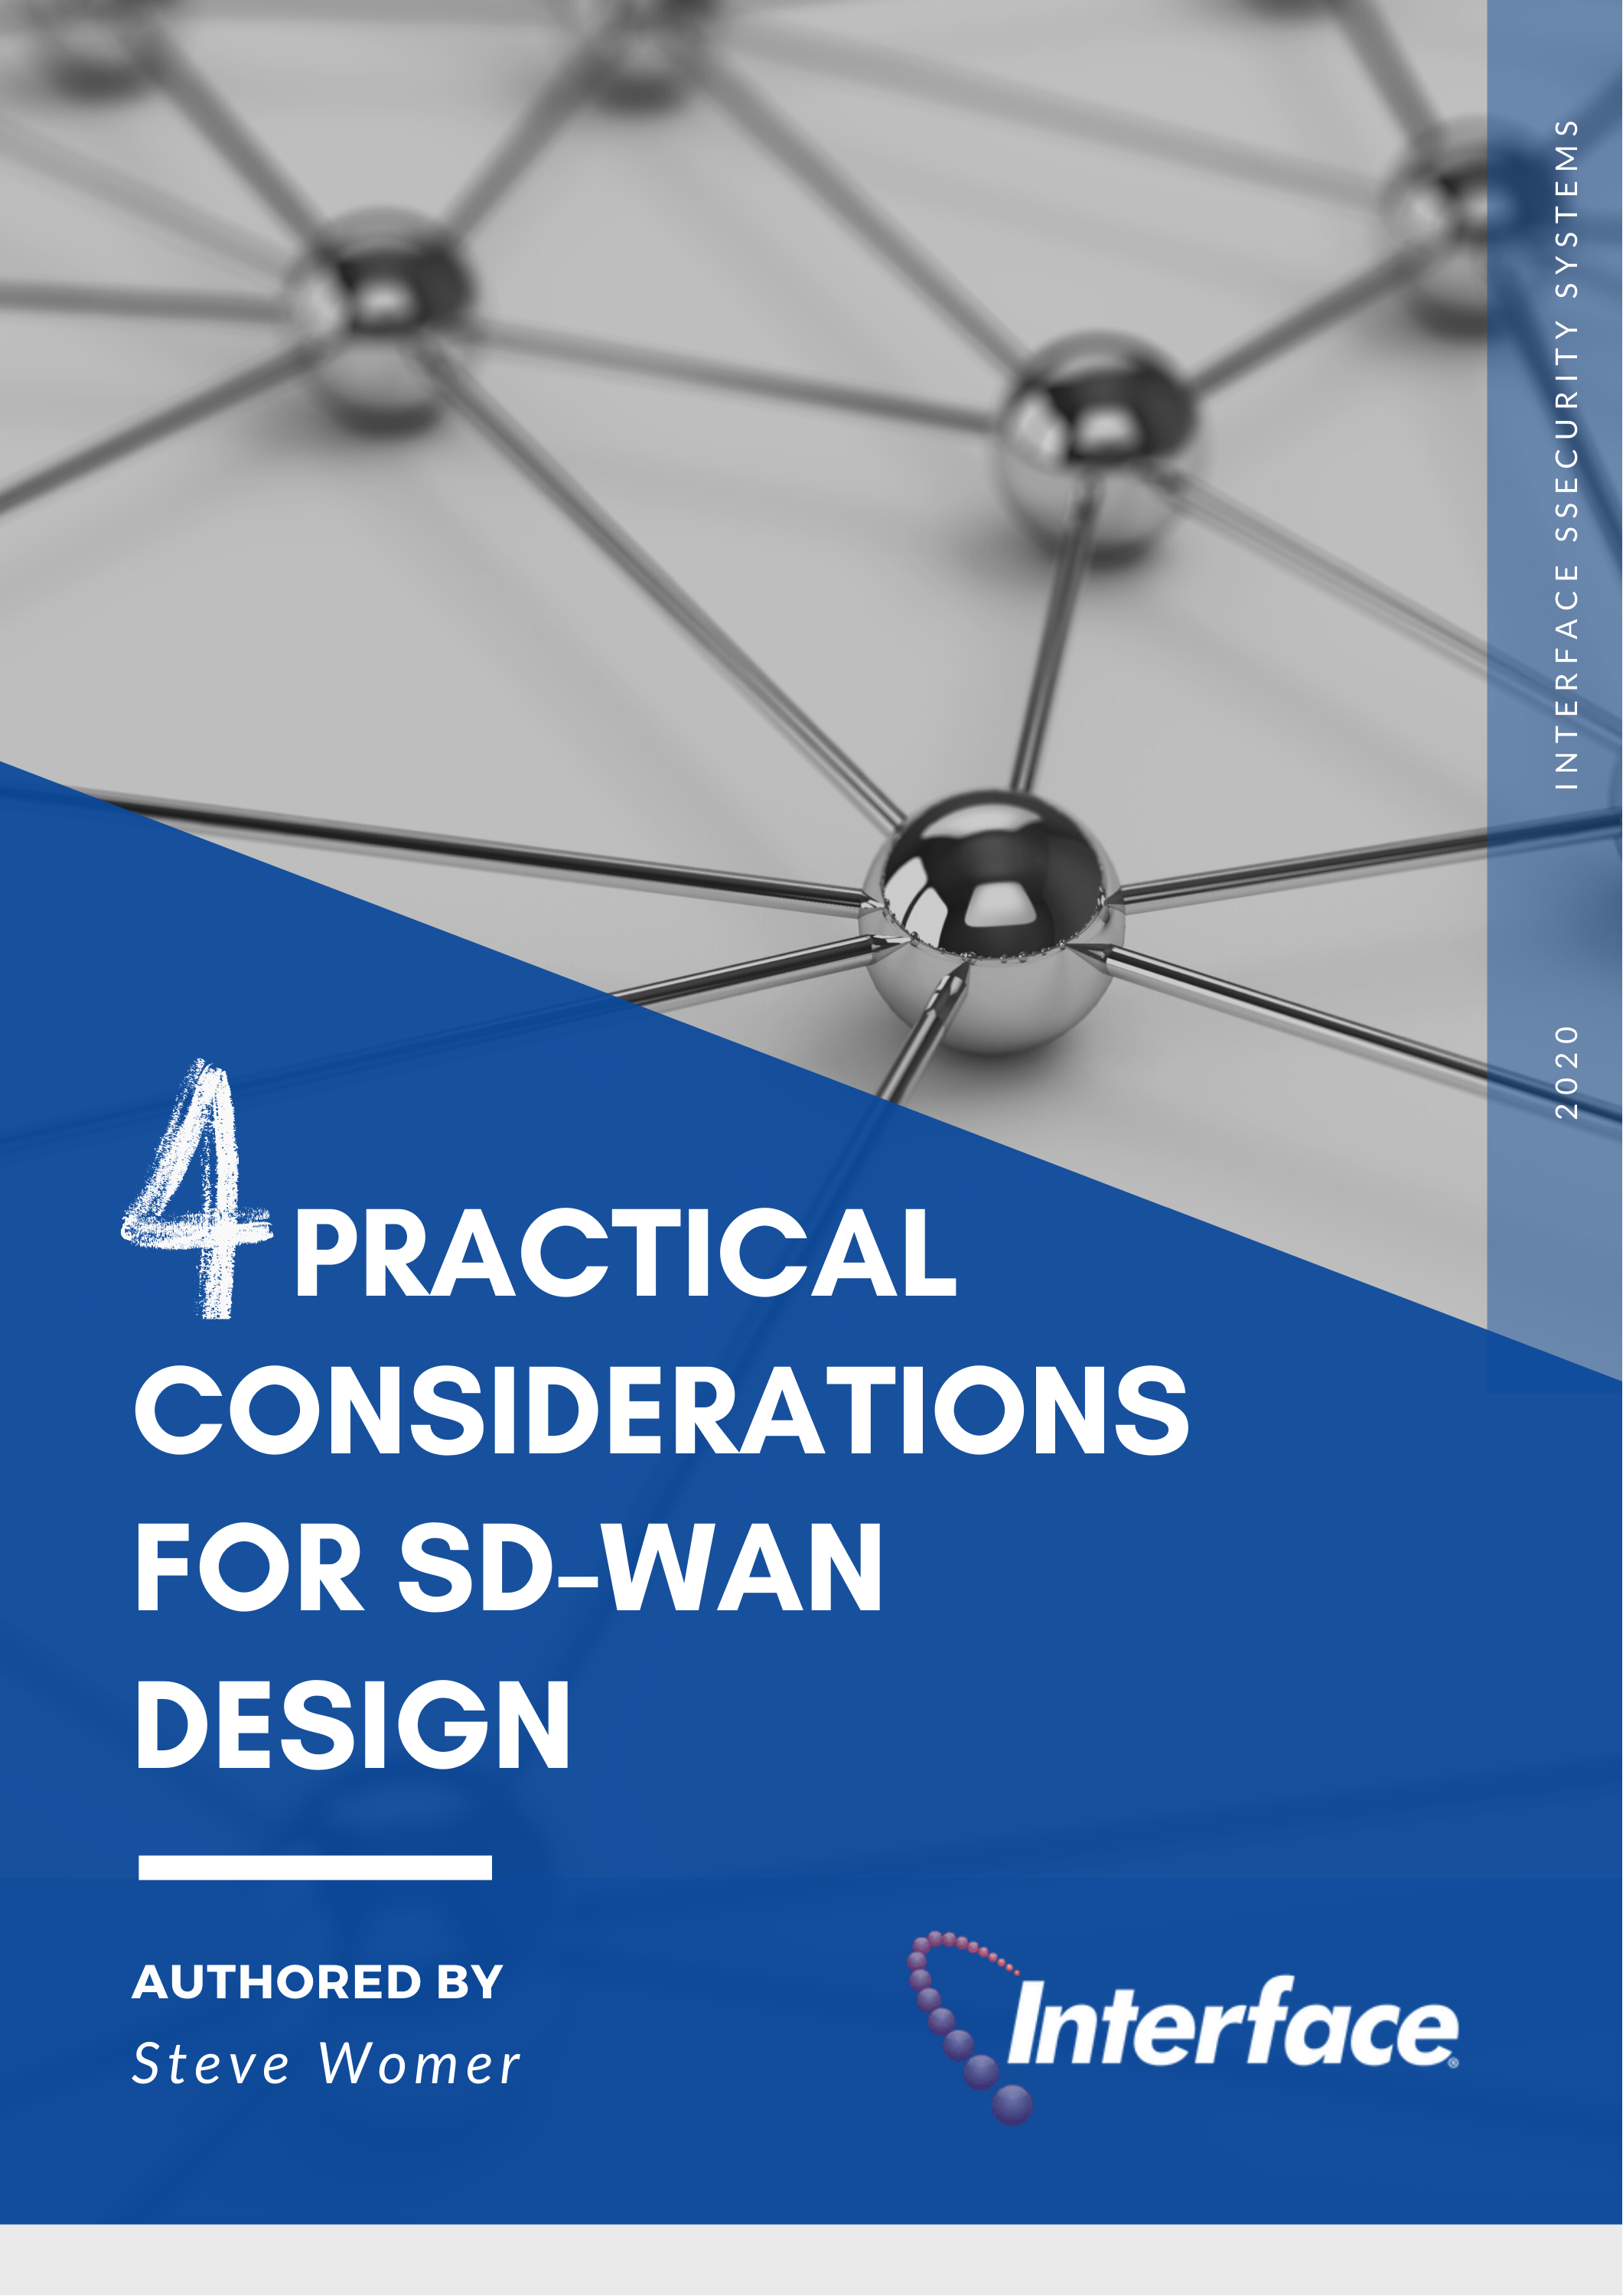 4 Practical Considerations for SD-WAN Design